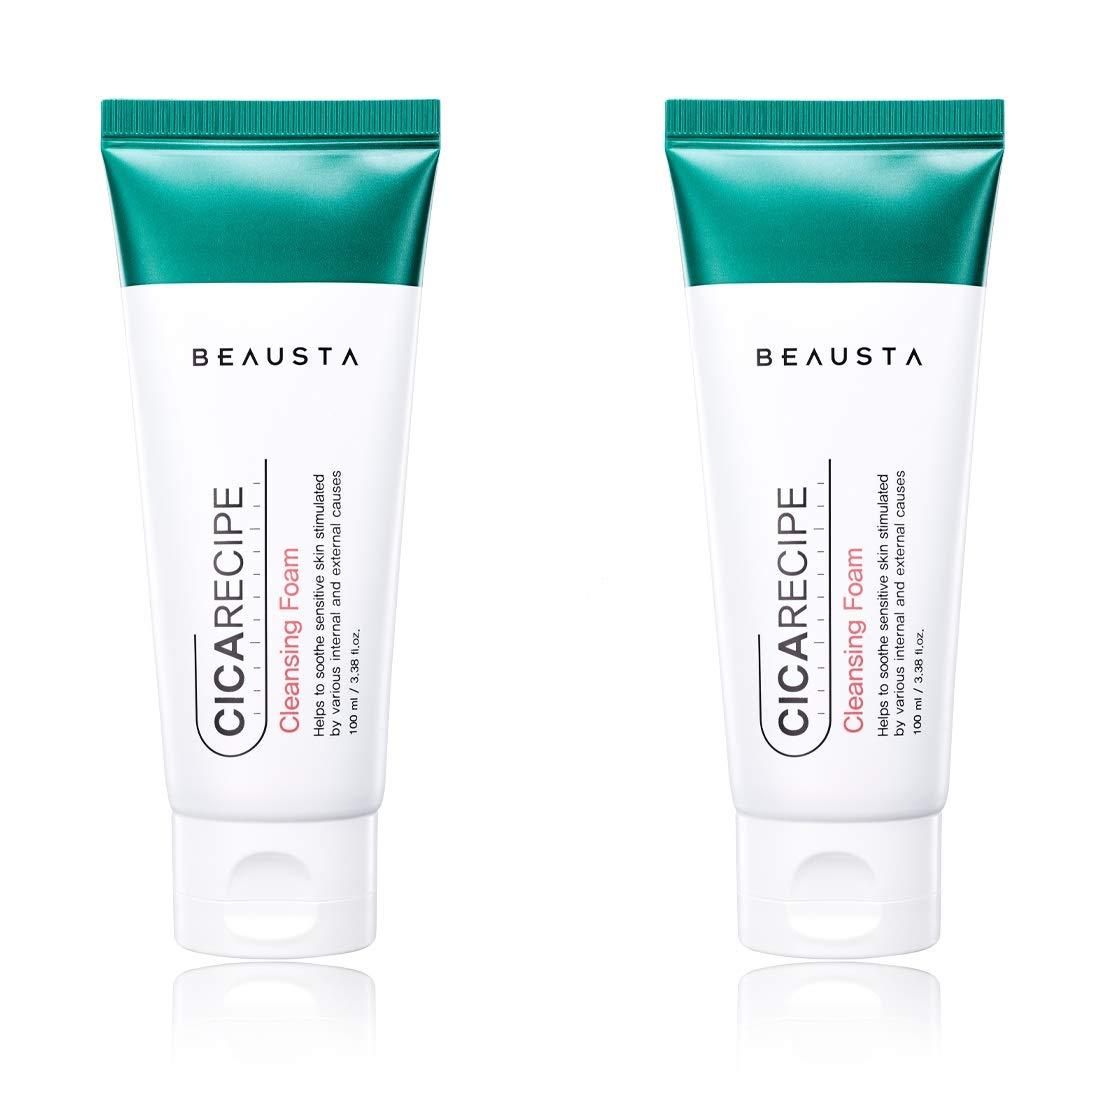 BEAUSTA CICARECIPE Moisturizing Cleansing Foam, Make Up Remover For Sensitive Skin